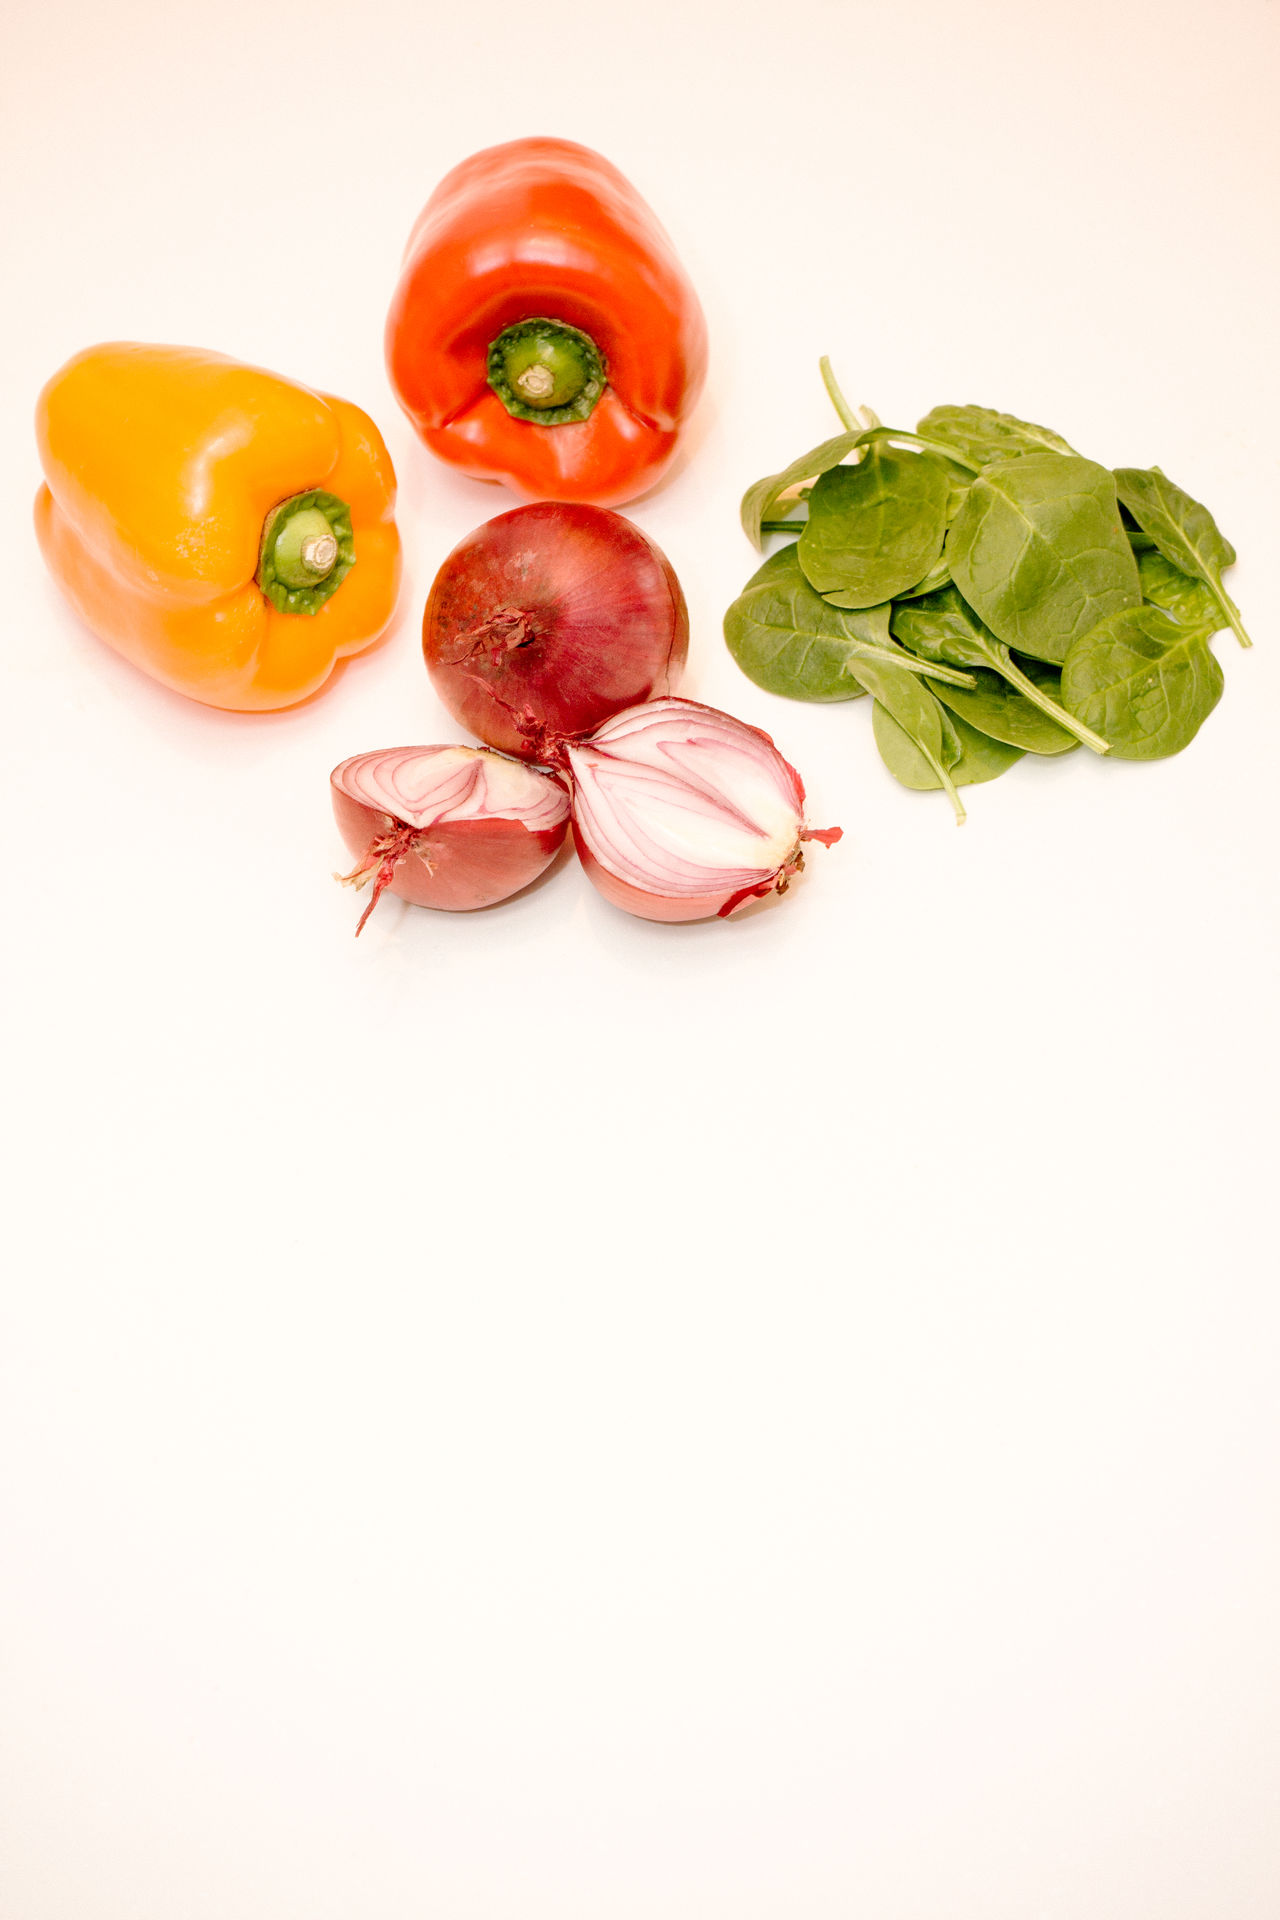 Bell Peppers Close-up Composition Food And Drink Freshness Healthy Eating Healthy Lifestyle Negative Space Organic Red Red Onion Ripe Simplicity Spinach Still Life White Background